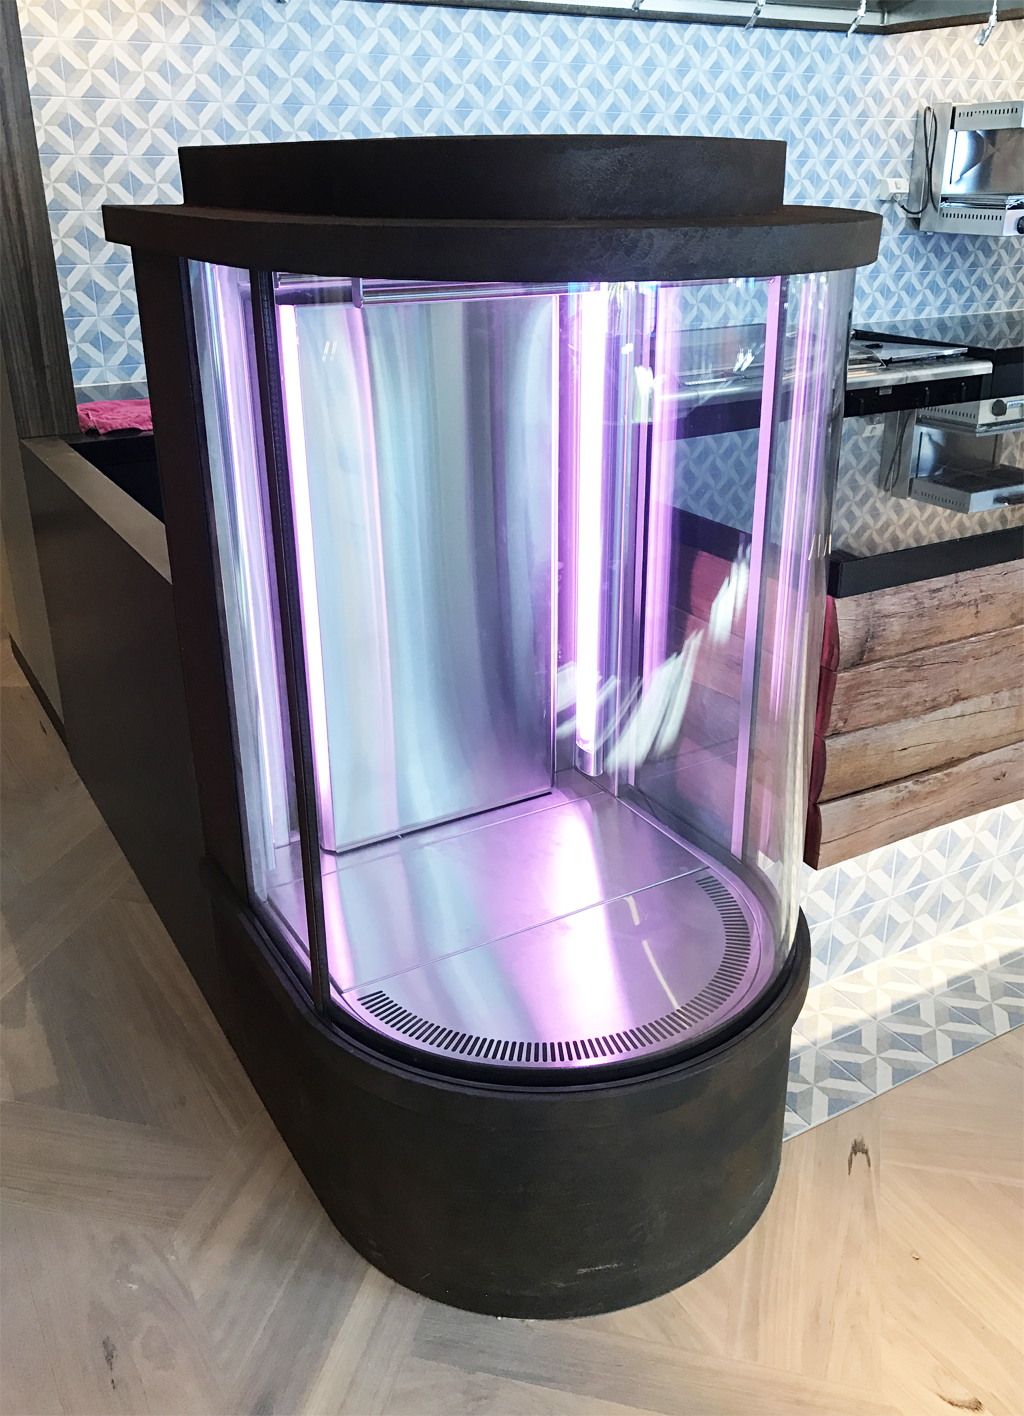 InterContinental_Hotel_Perth_Custom_Curved_Glass_Refrigerator.jpg